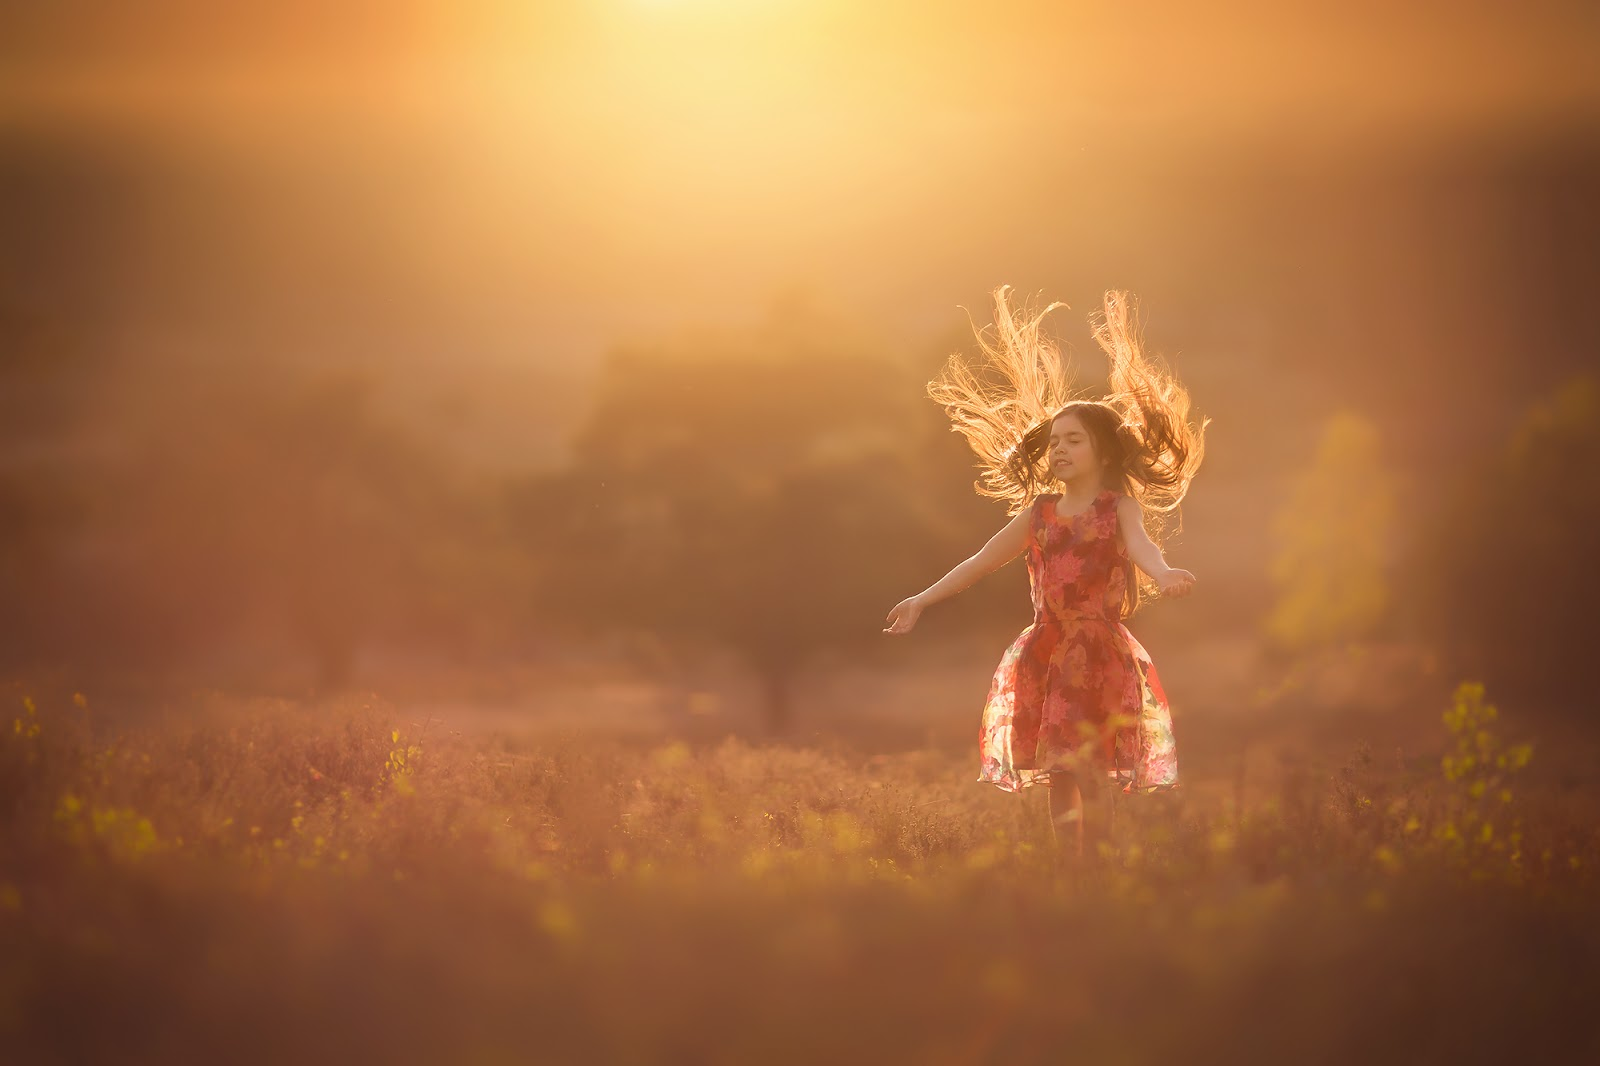 Canon golden hour fine art portrait of a little asian girl with jumping hair and catching sunlight by willie kers